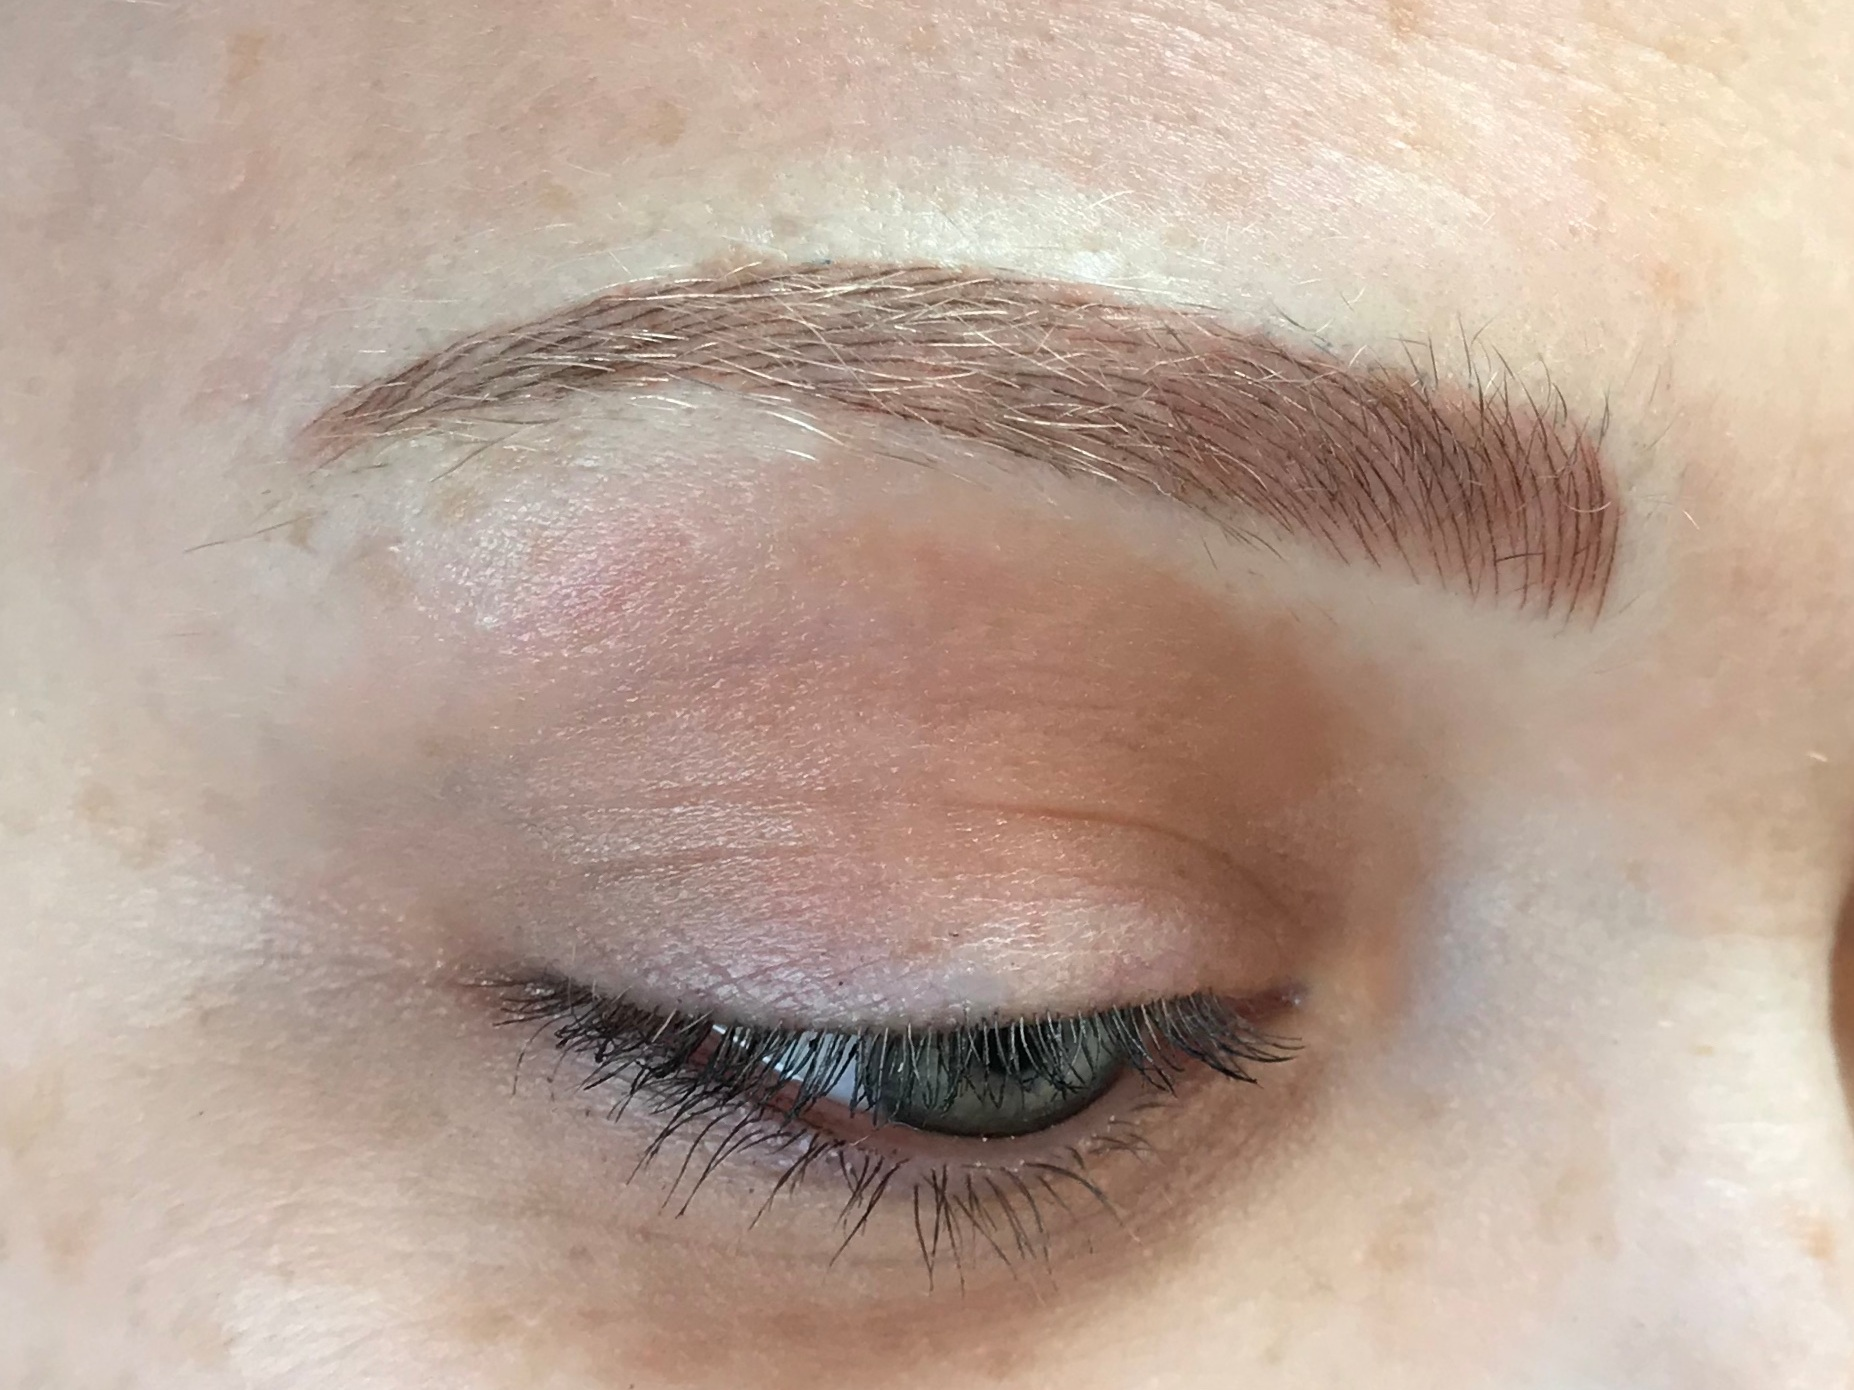 MICROBLADING | These brows are made to look like hairstrokes.